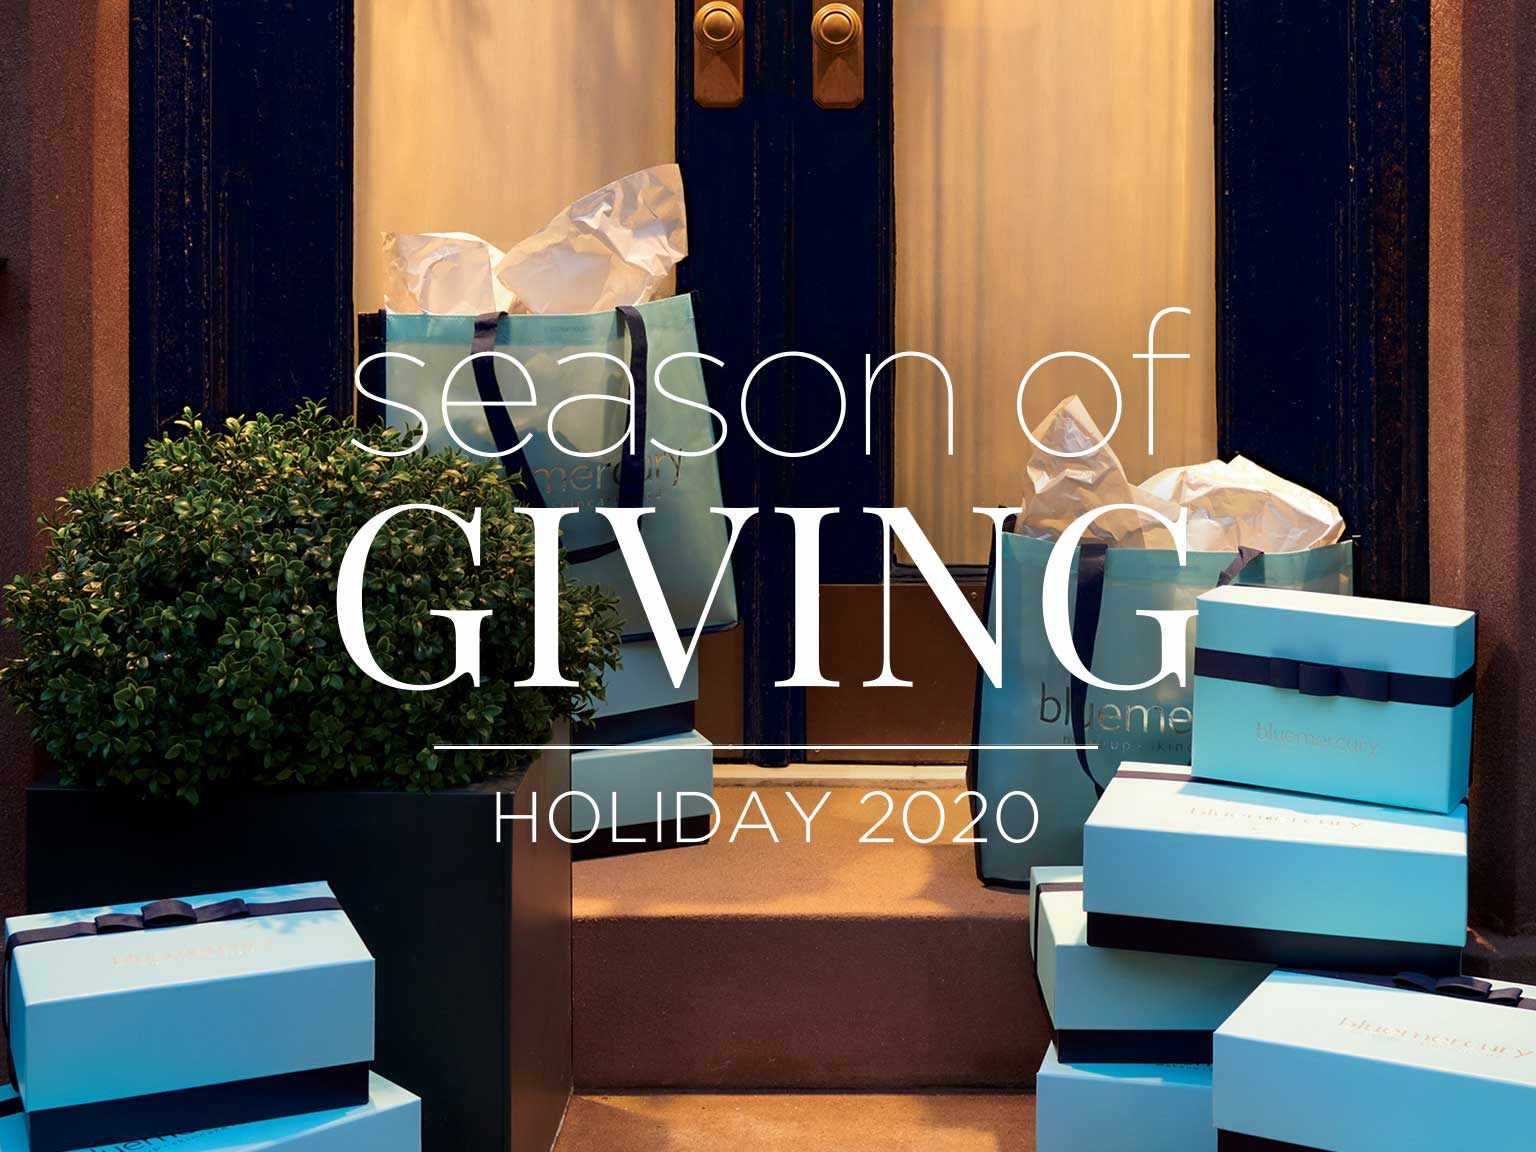 Season of Giving | Holiday 2020